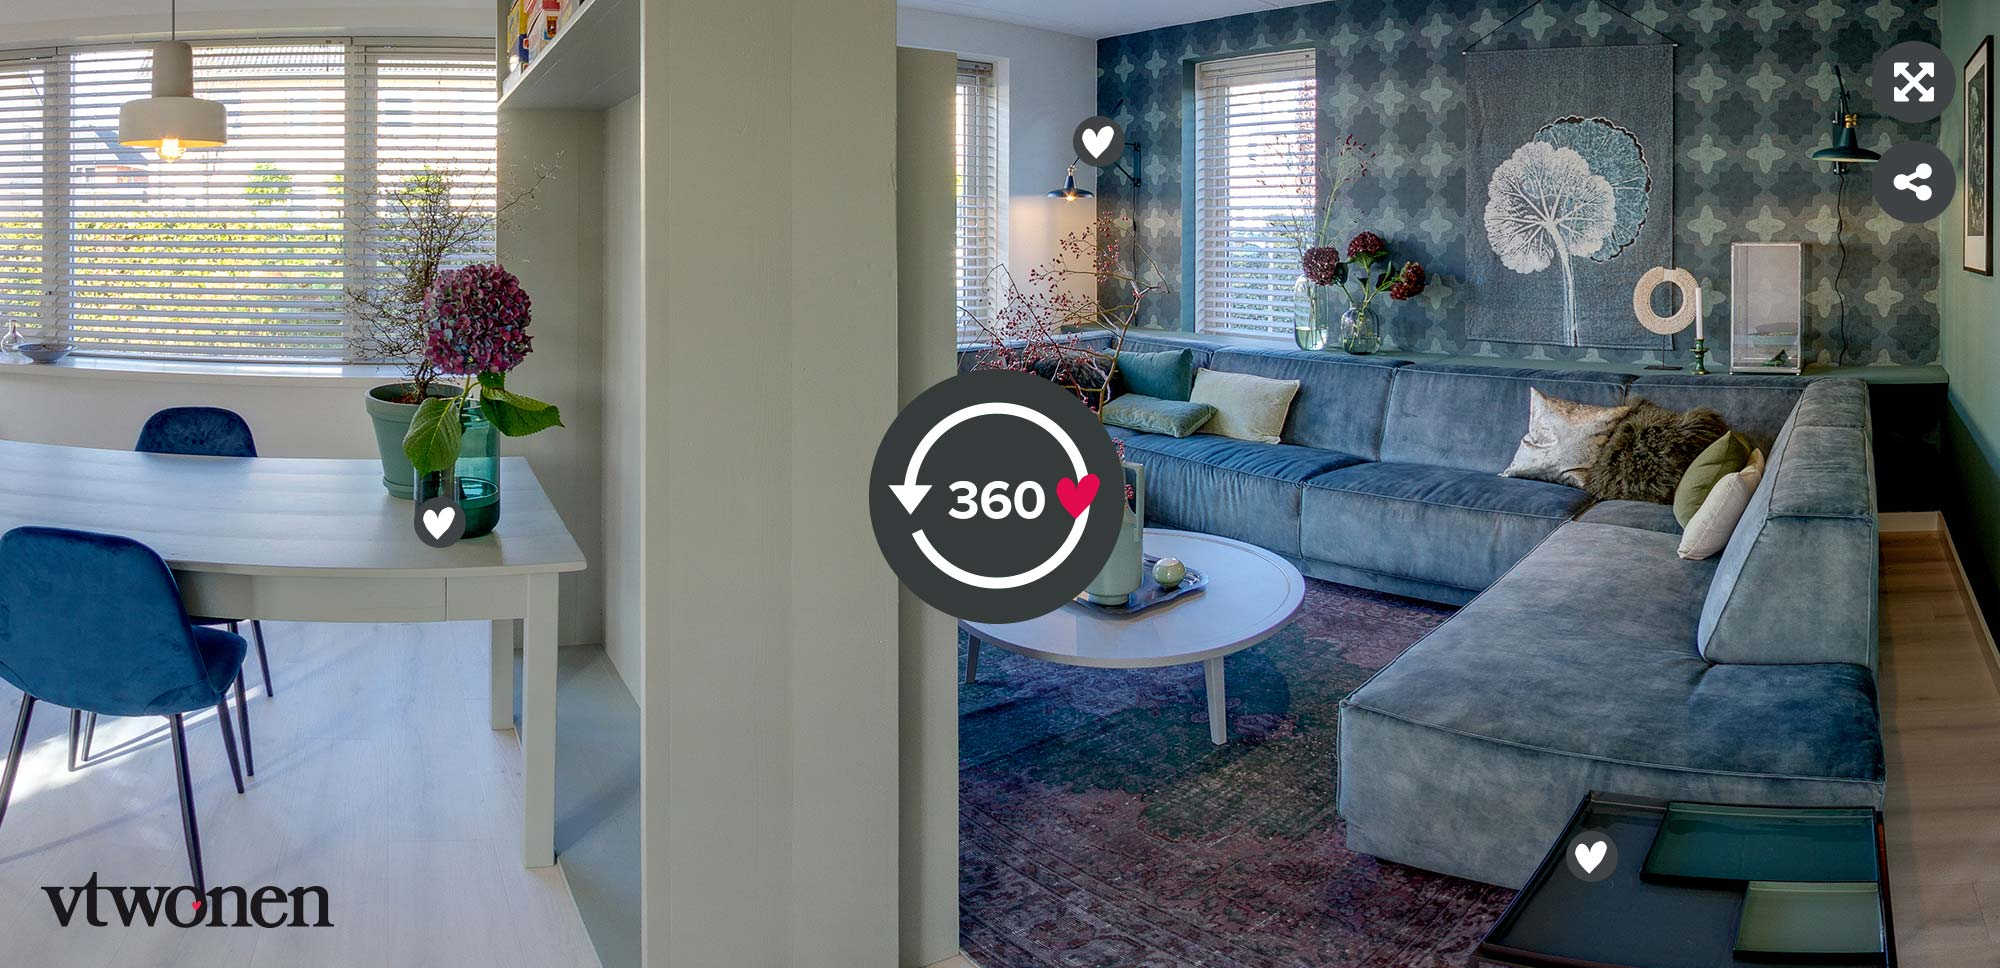 360 tour vtwonen make-over in Dronten aflevering 12 seizoen 9